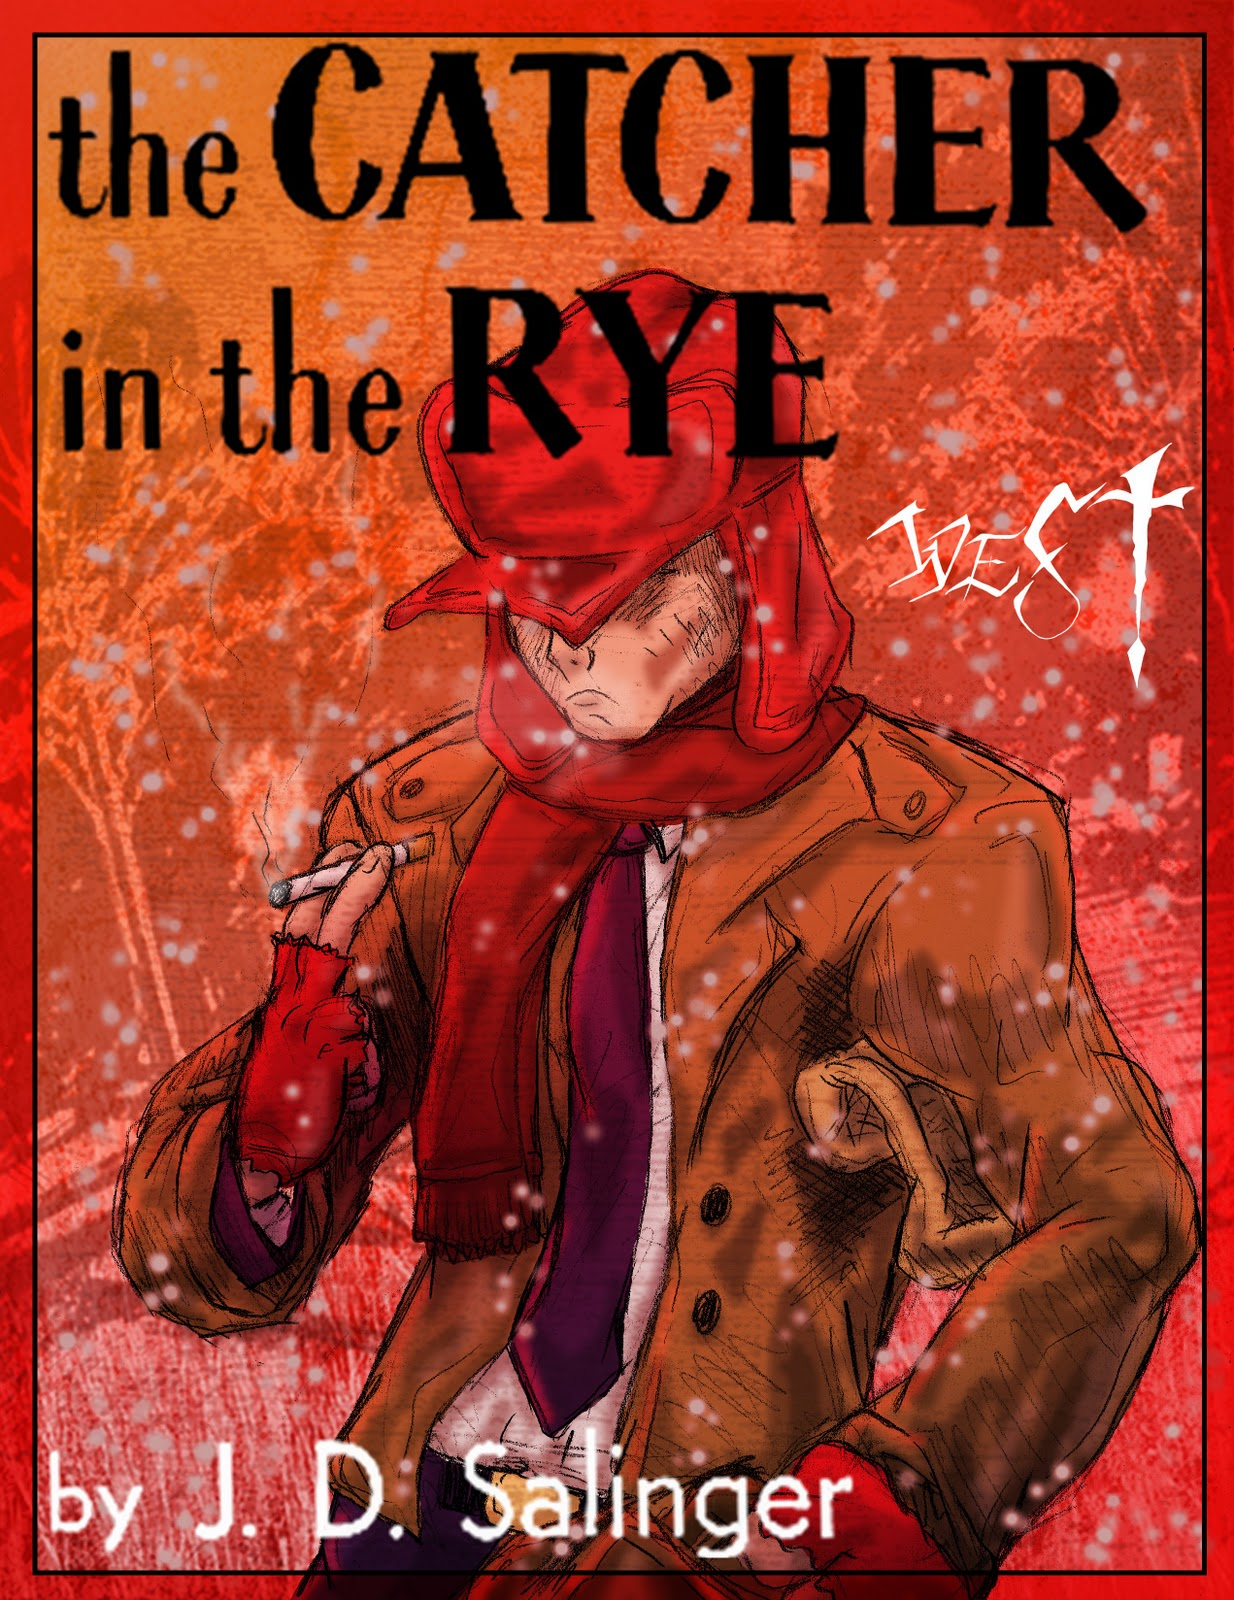 a character analysis of holden caulfield from the catcher in the rye by j d salinger Holden caulfield character analysis 1 17-year-old narrator and protagonist of the novel, speaks to the reader directly from a mental hospital or sanitarium in it is his problems with death and adulthood, that bring his selfdestructing nature into being in the catcher in the rye, jd salinger's holden.